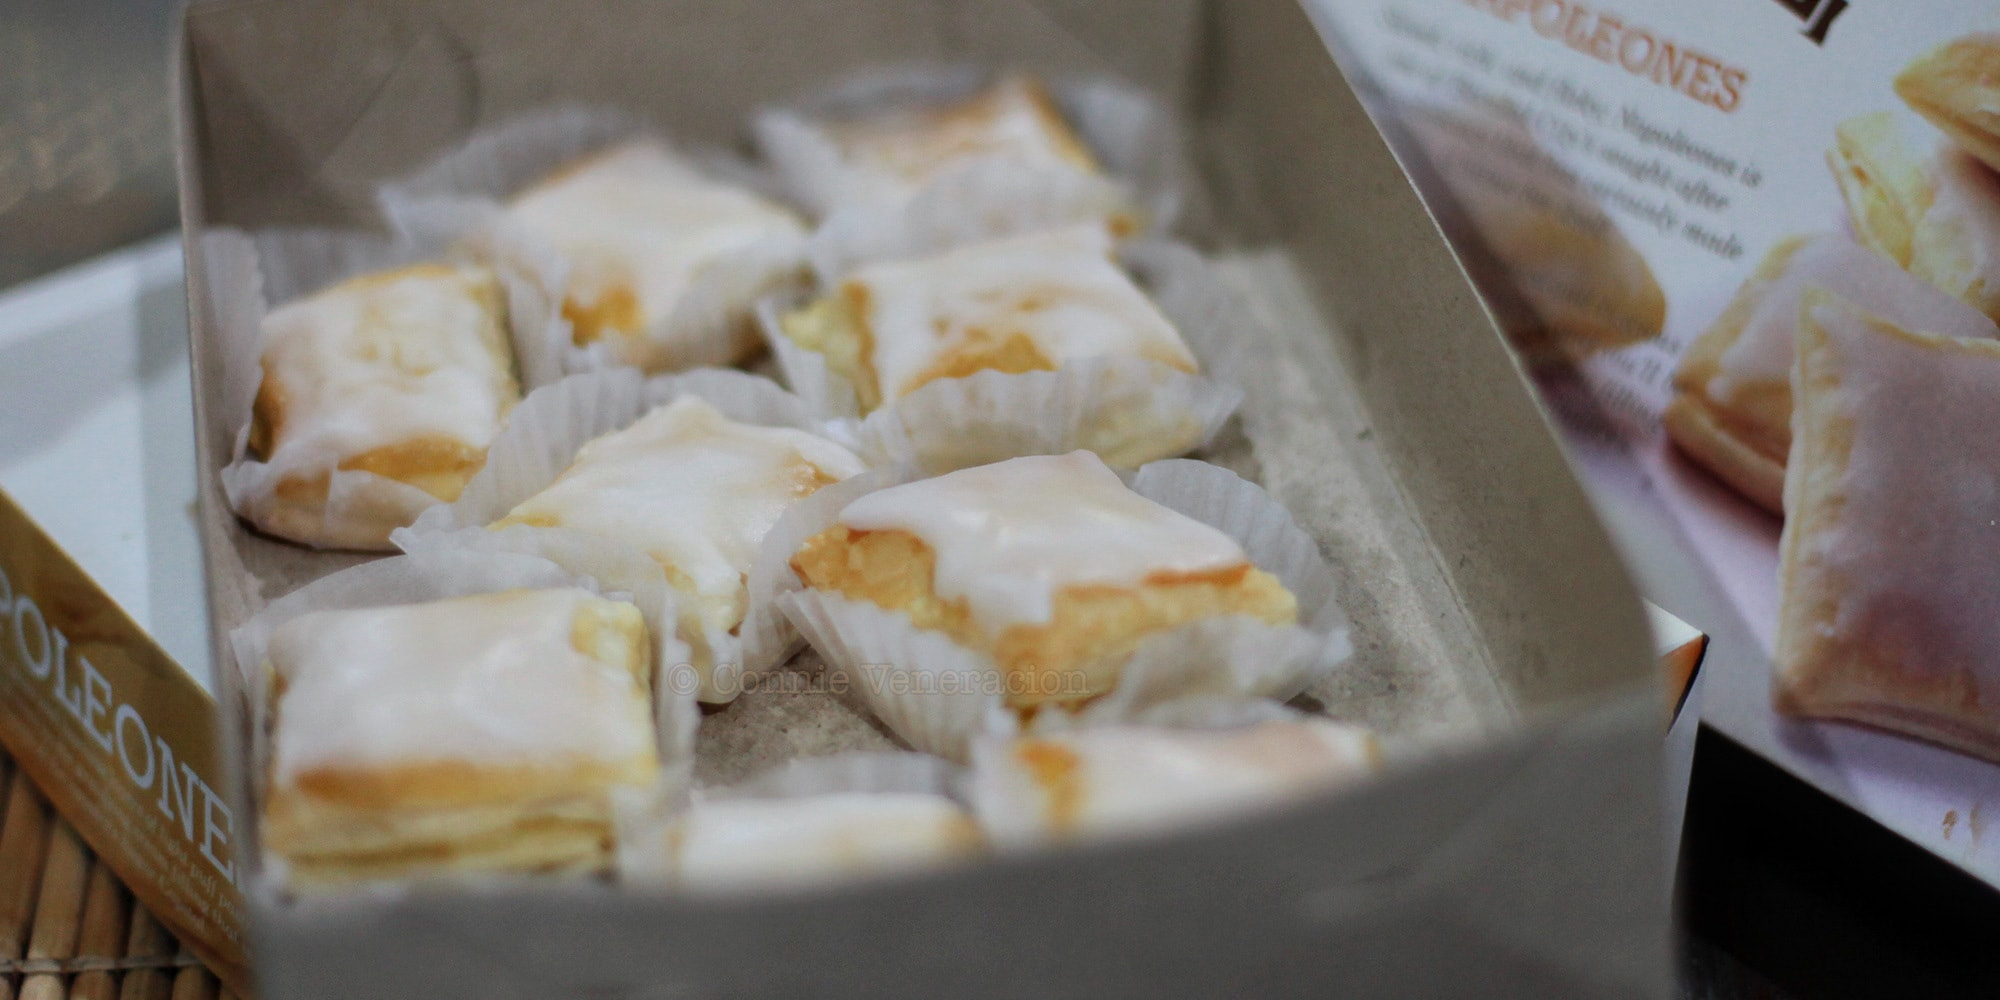 Bacolod, revisited: in search of the best Napoleones | casaveneracion.com